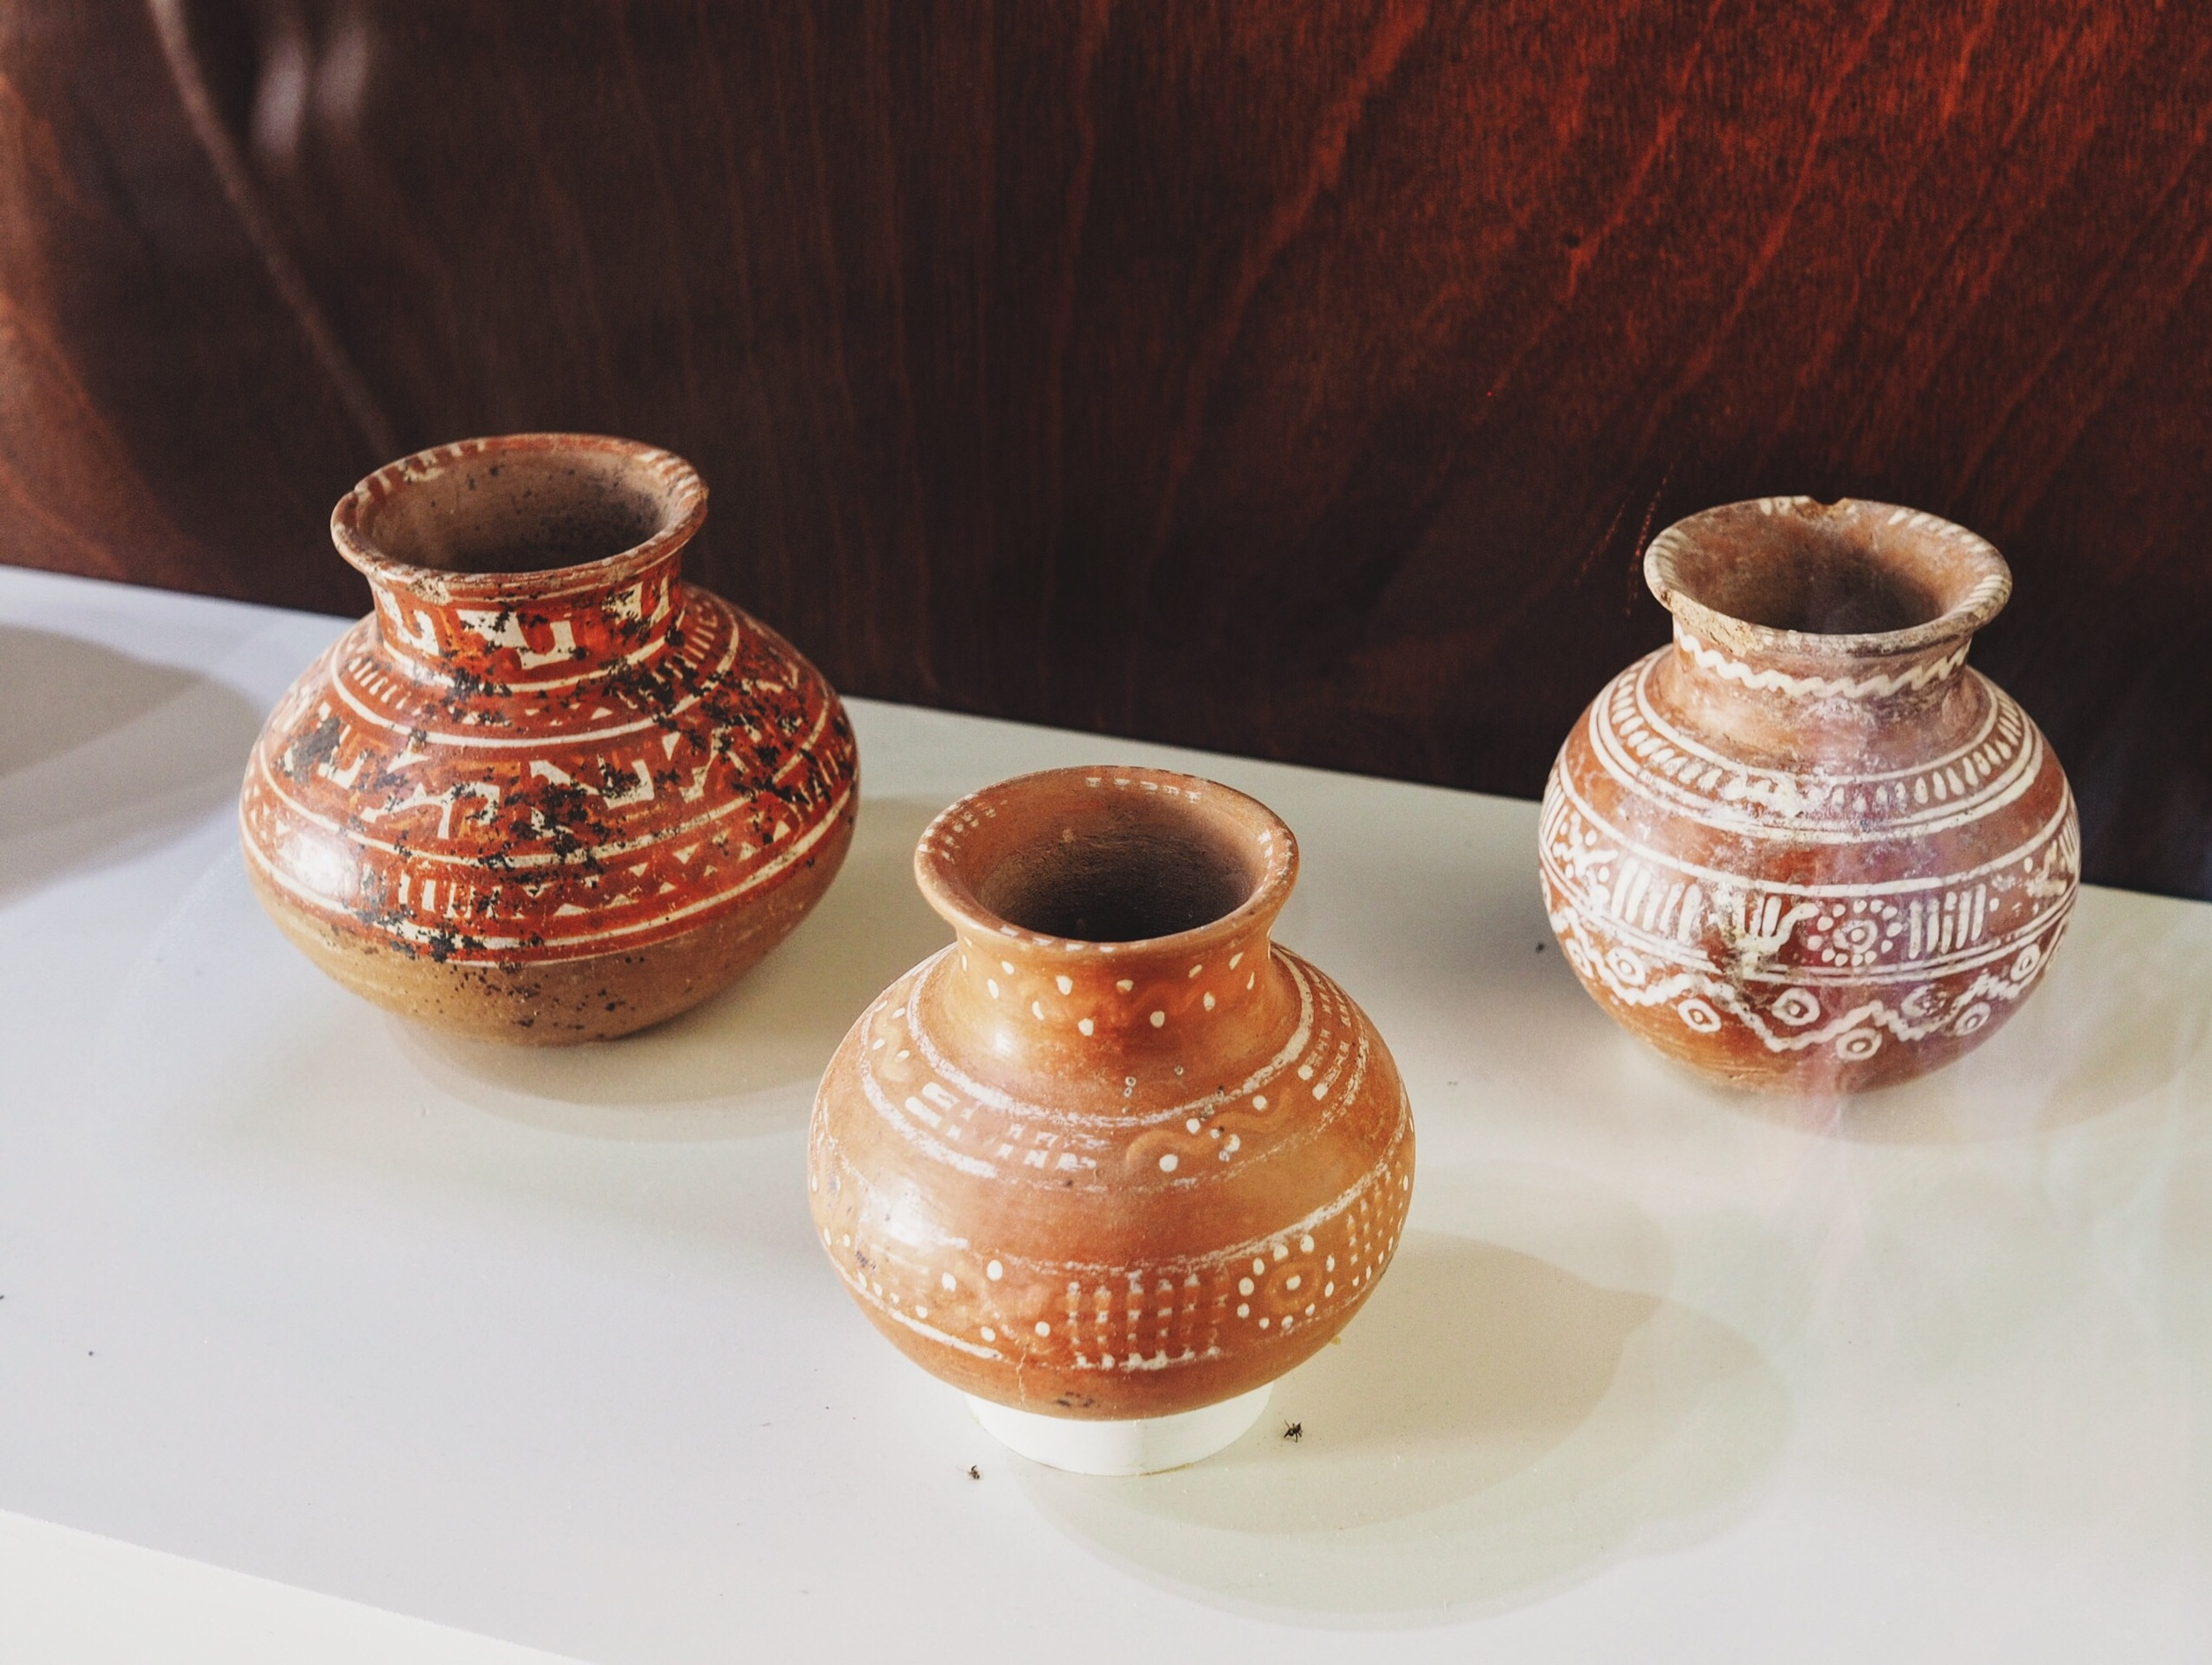 Red clay ceramics likely pit-fired, circa 800AD